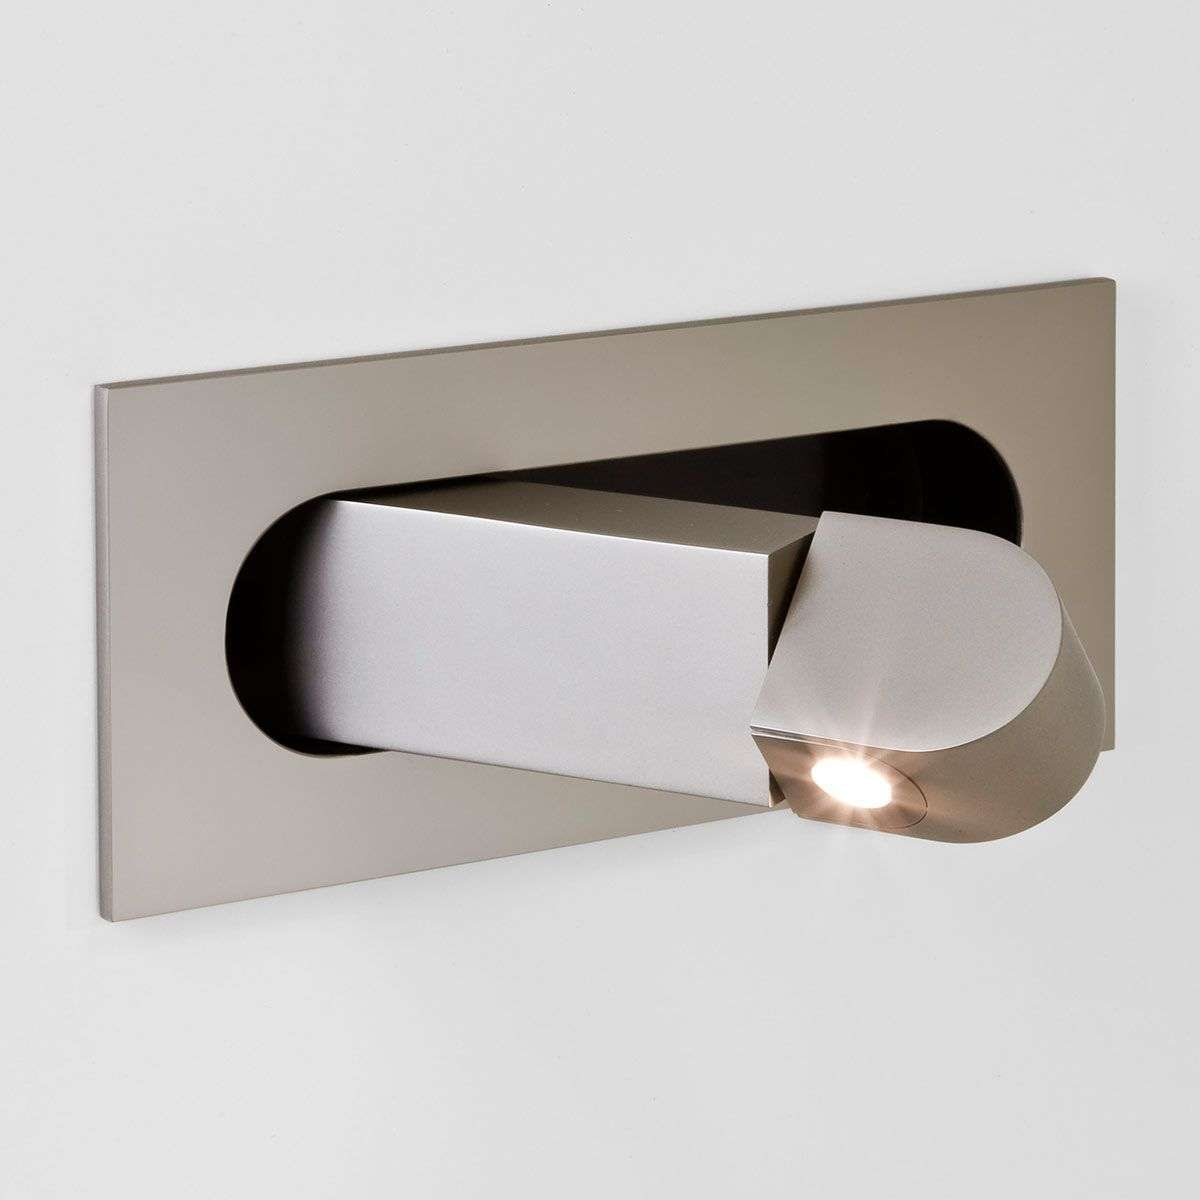 Digit led wall light as reading light nickel for Wall light with reading light